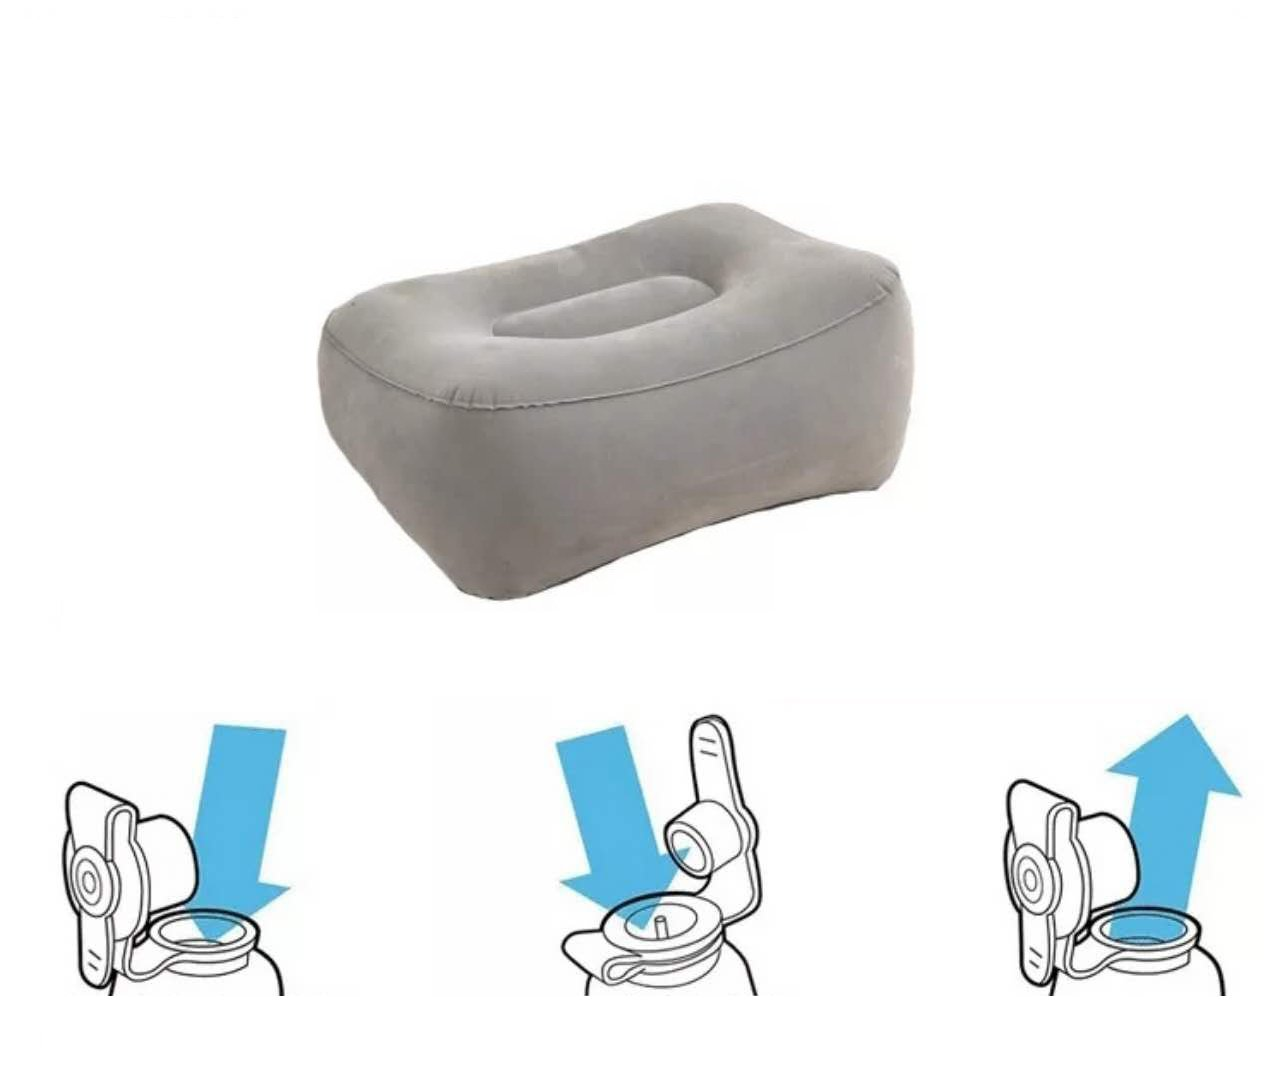 Inflatable Travel Leg Foot Rest Pillow and Sleep Cushion for Kids and Adults – Foot Rest Cushion for Airplane/Car/Bus/Train/Office,Travel Rest Bed,Long Trip Companion